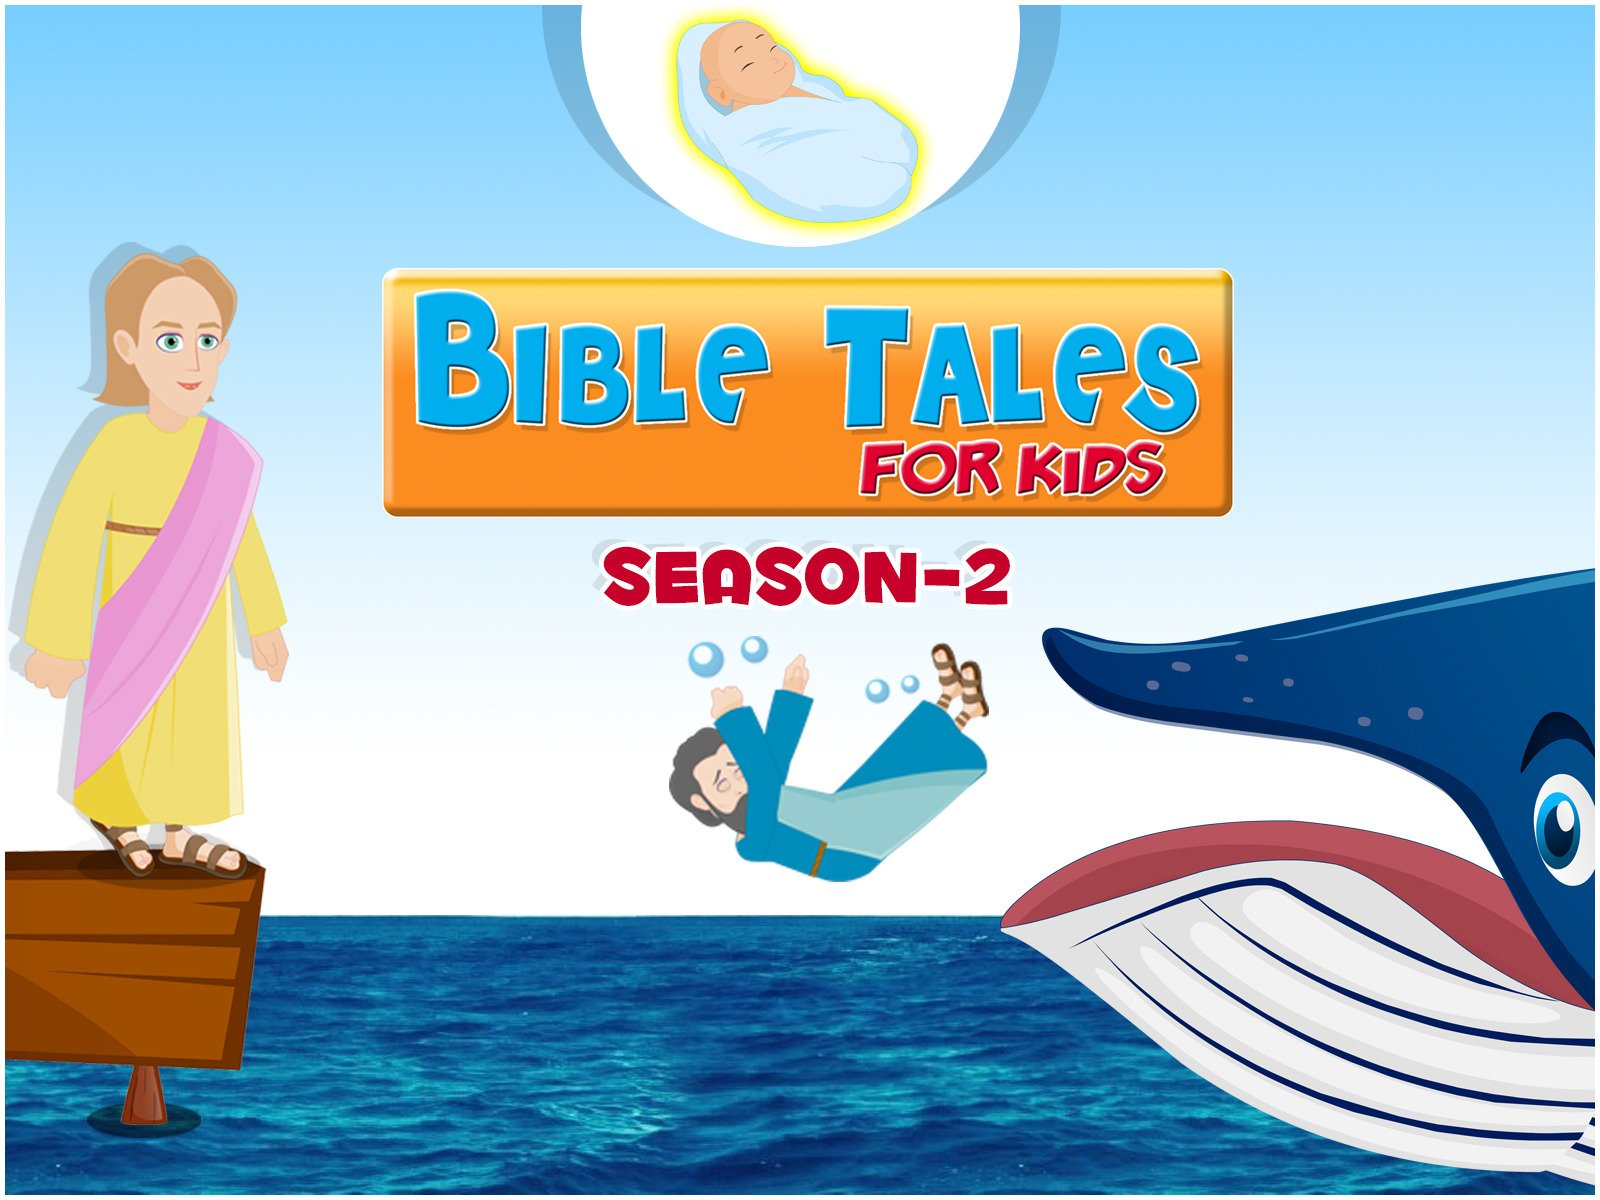 Bible Tales for Kids - Season 2